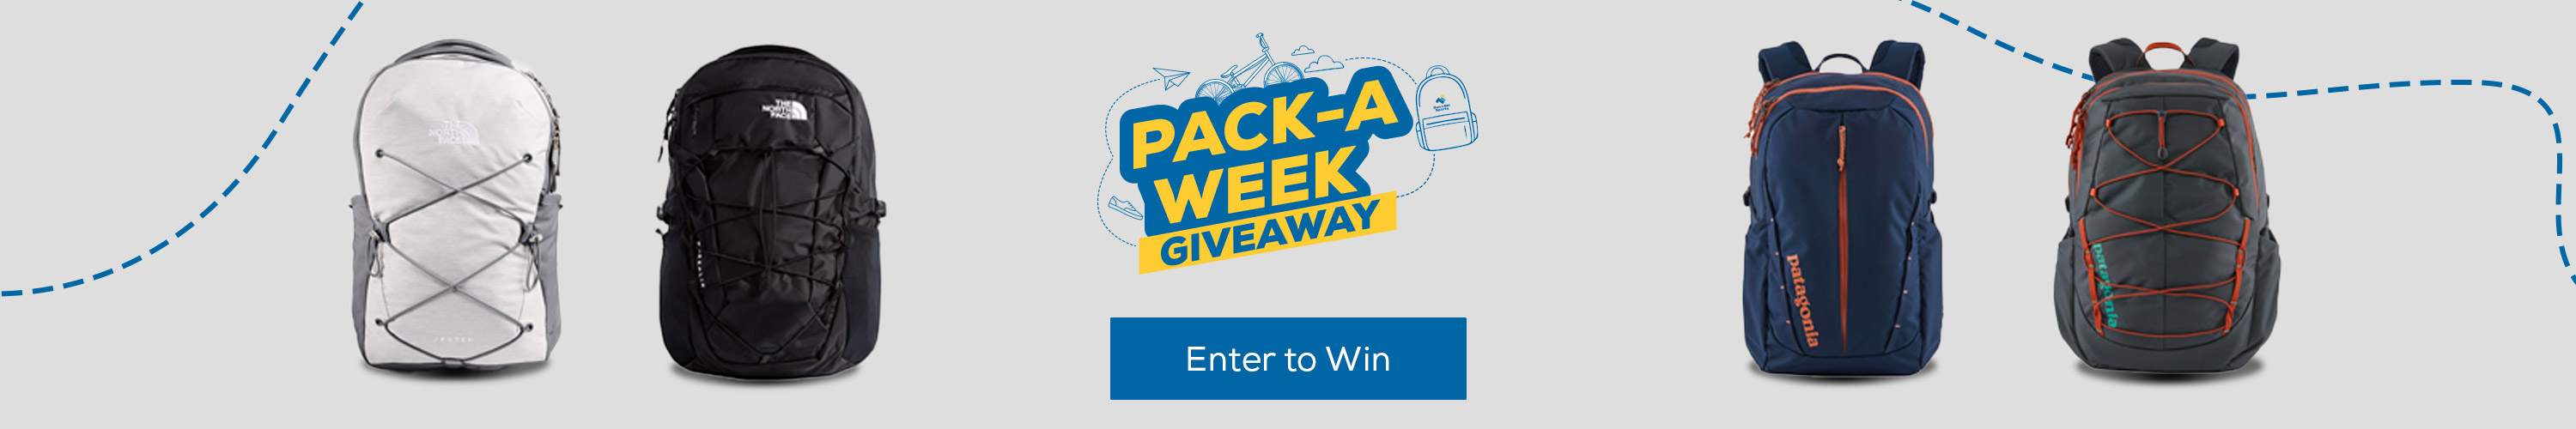 Pack-a-Week Giveaway. Enter to win.